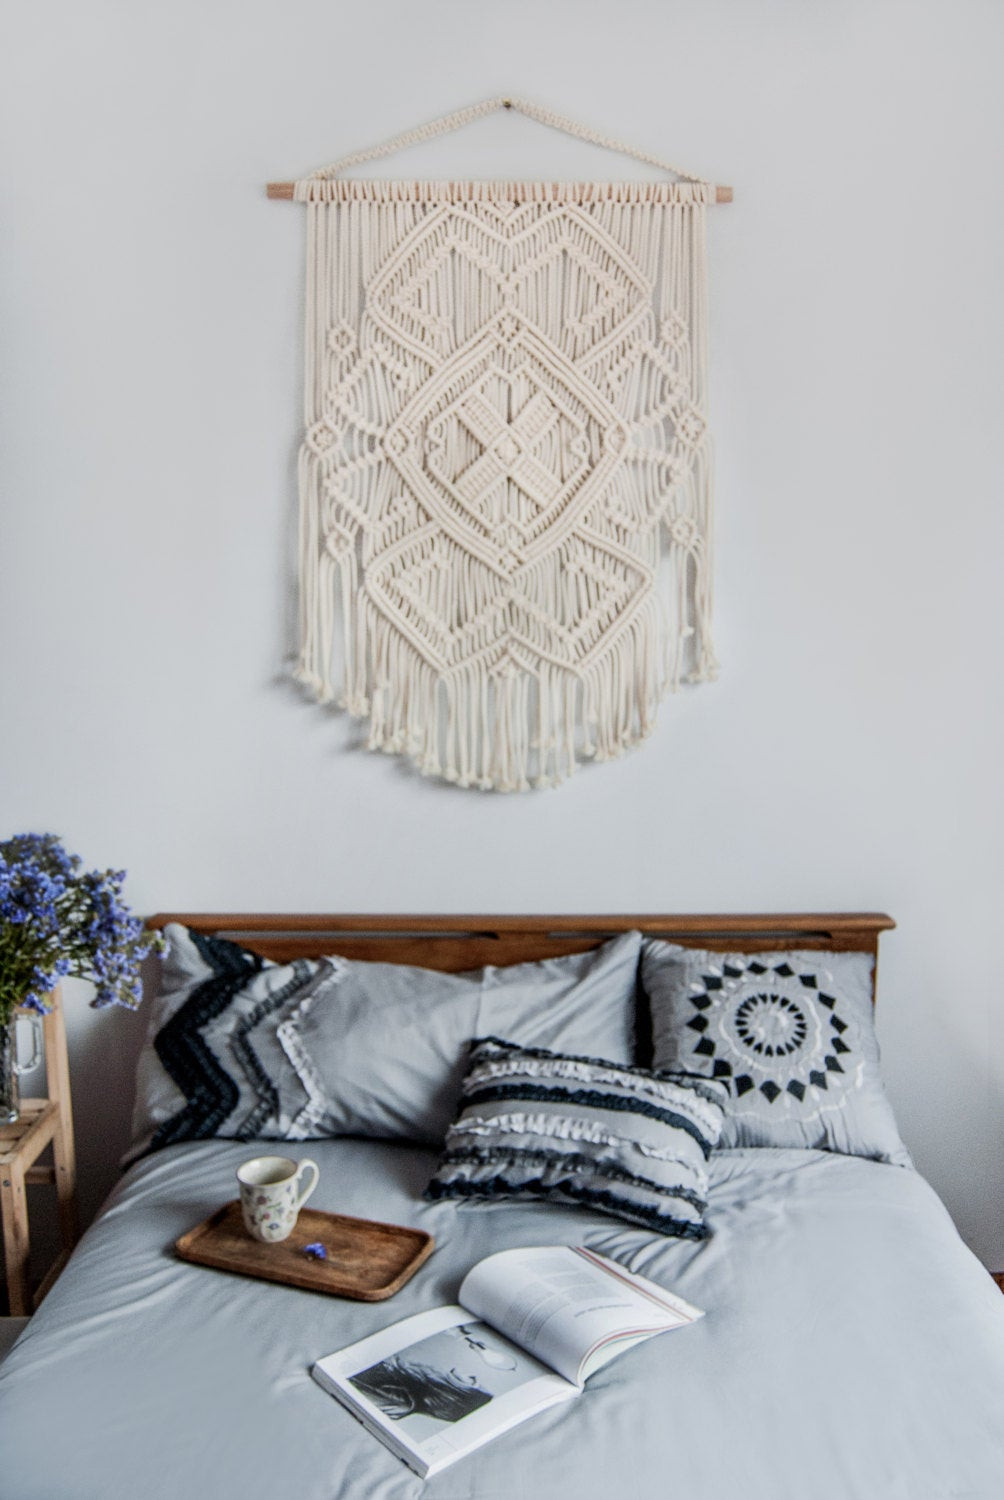 Best ideas about Boho Wall Art . Save or Pin Macrame wall hanging vintage macrame macrame wall art boho Now.